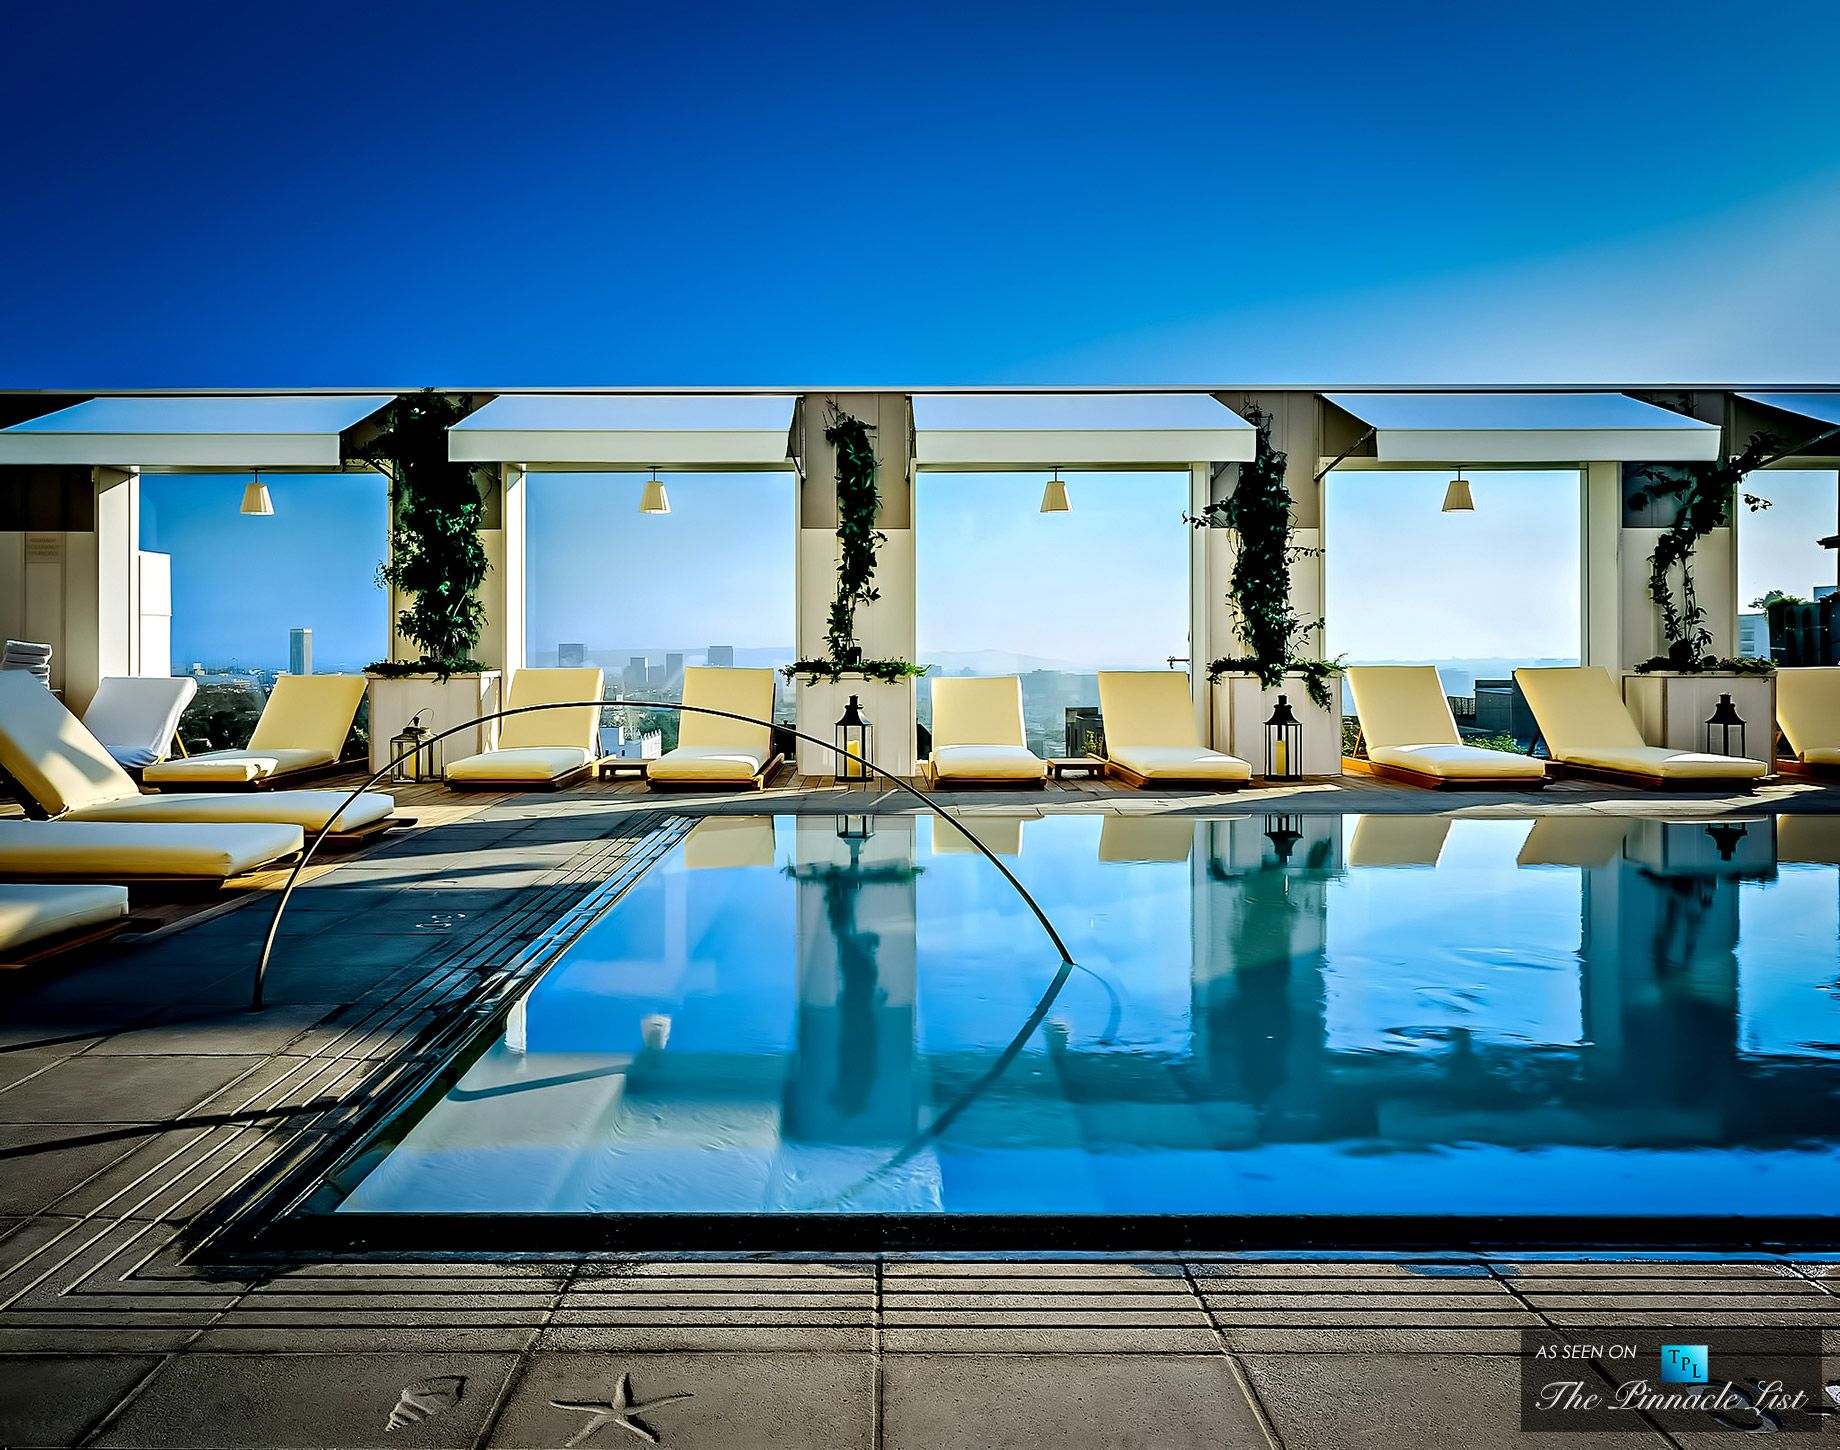 Mondrian Los Angeles Hotel Skybar Rooftop Pool | Cool pools ...